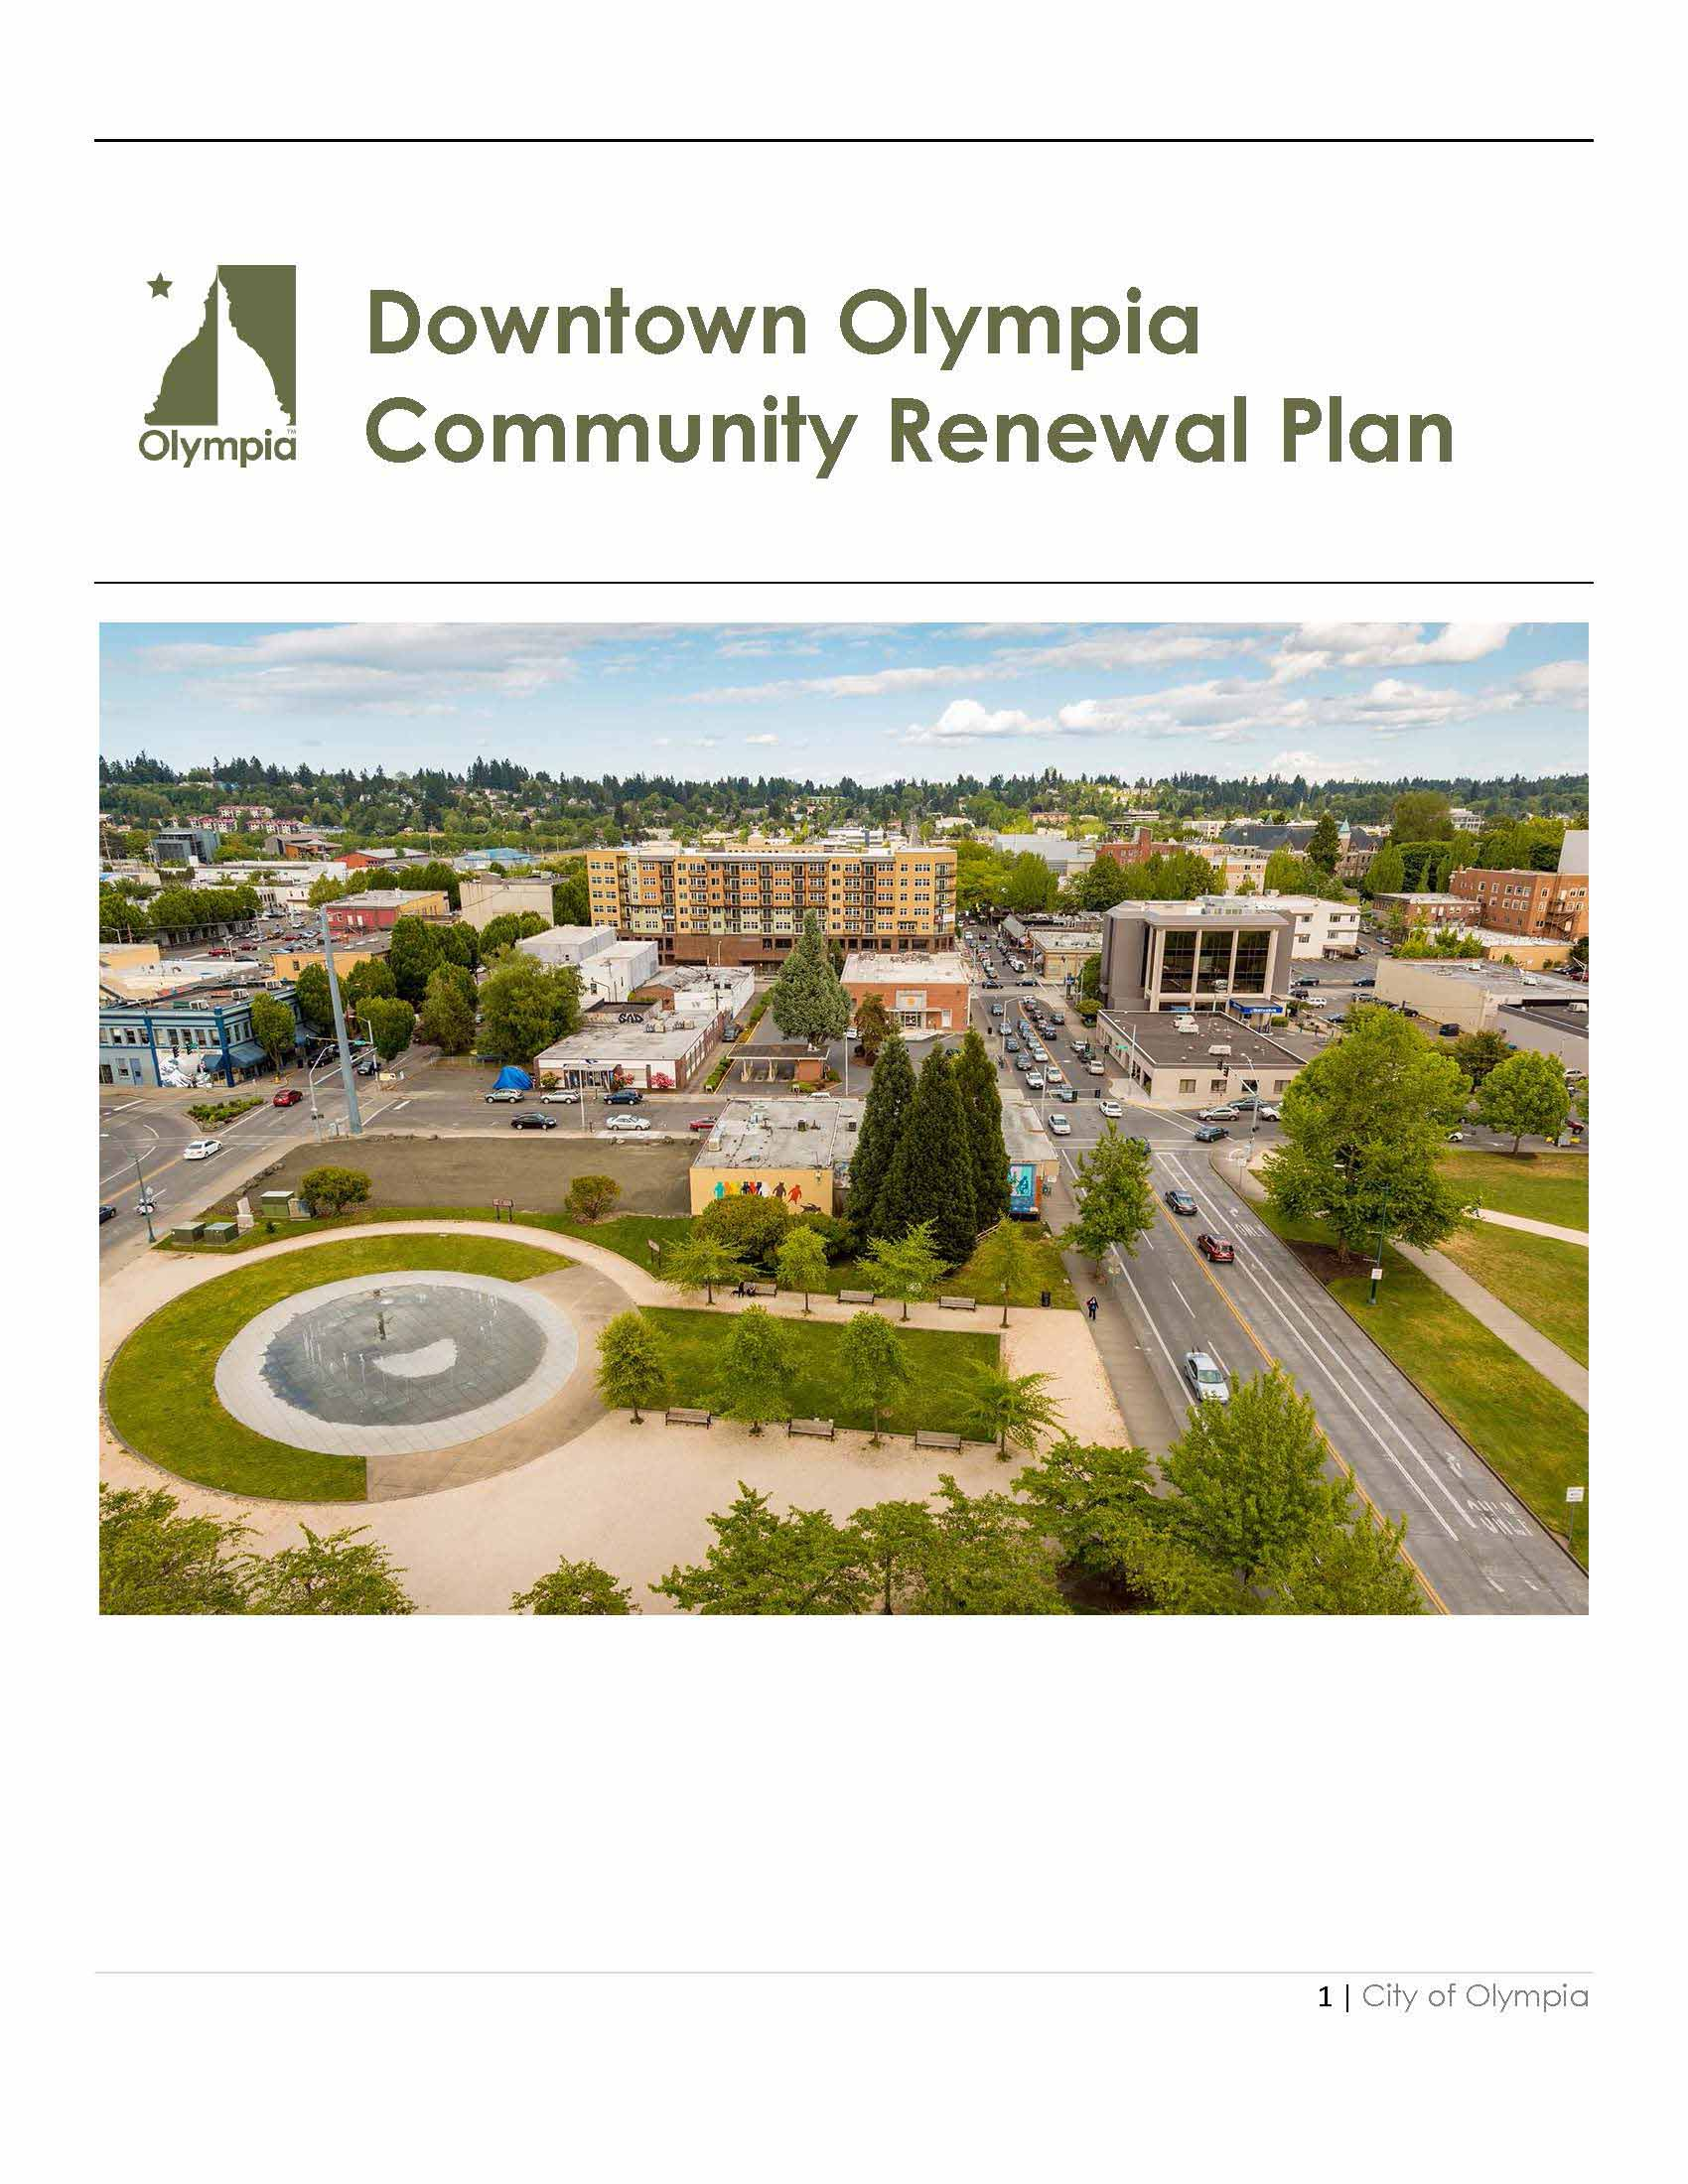 Cover image– Downtown Olympia Community Renewal Plan.jpg